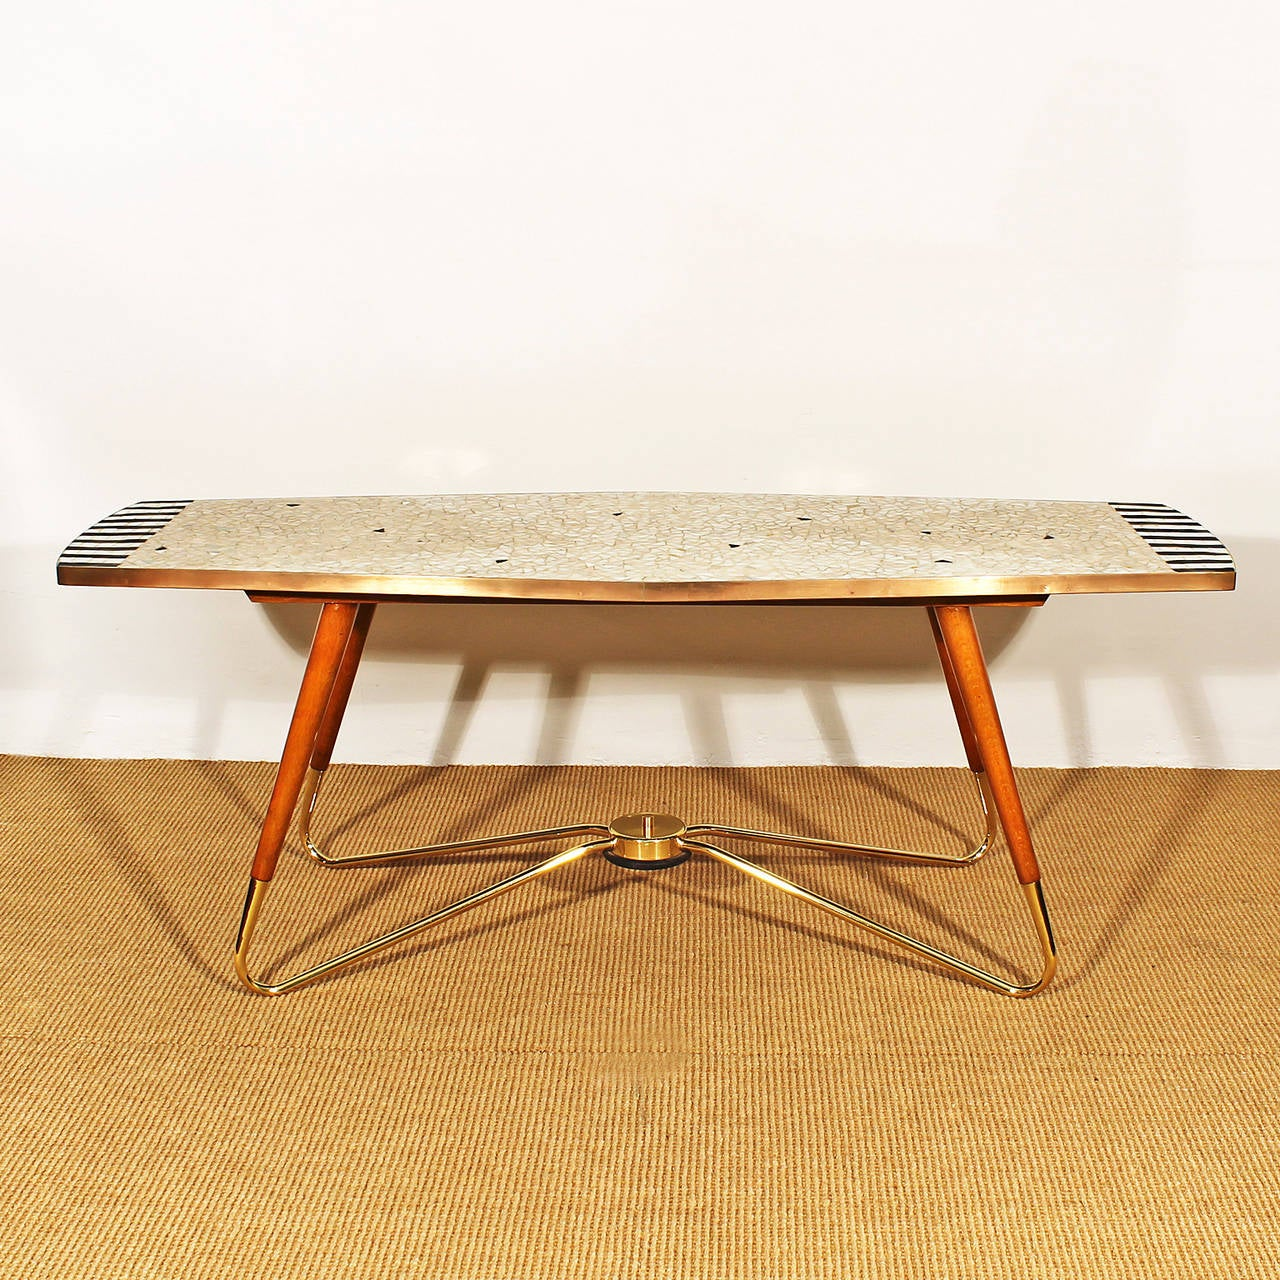 Mosaic Coffee Table From The 1950s At 1stdibs